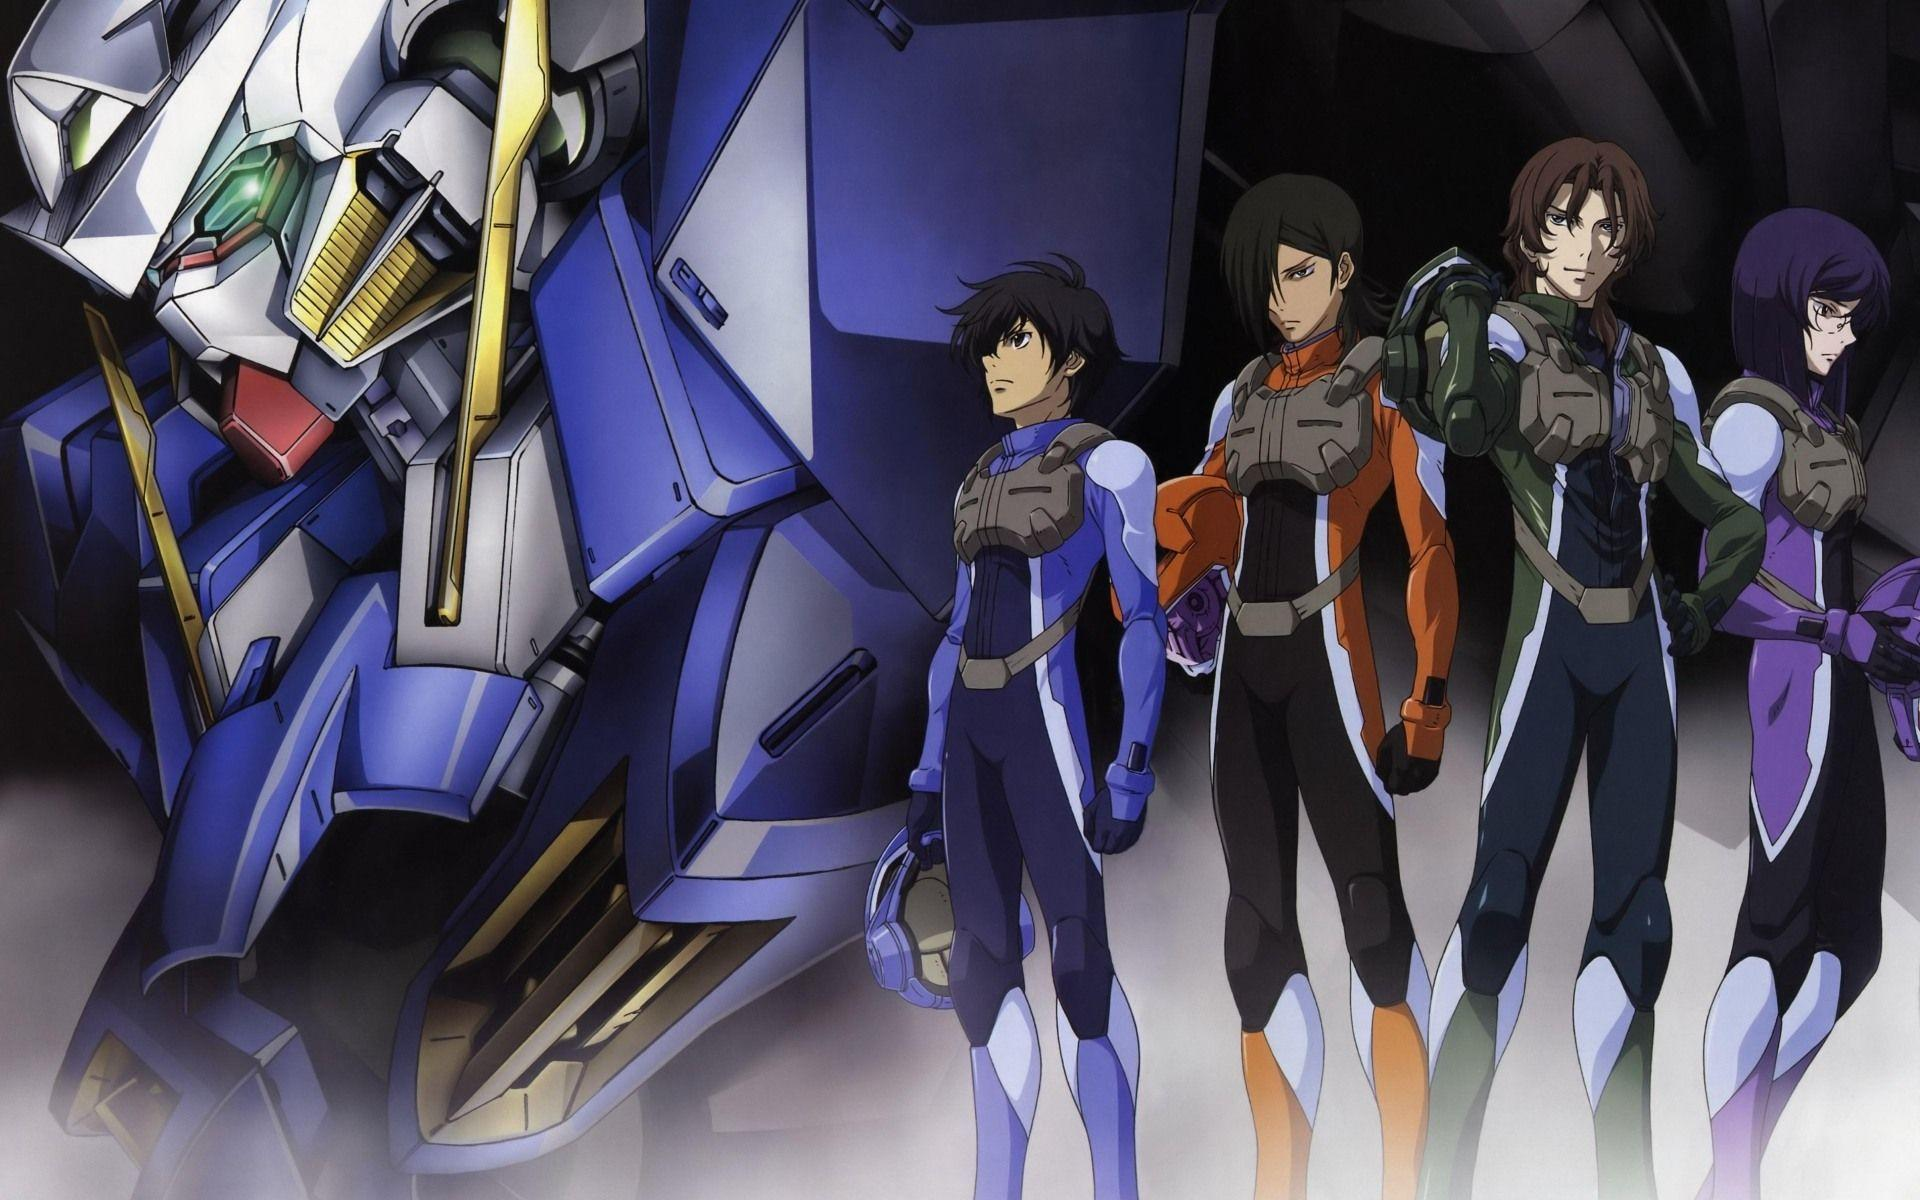 Mobile Suit Gundam 00 Wallpapers Top Free Mobile Suit Gundam 00